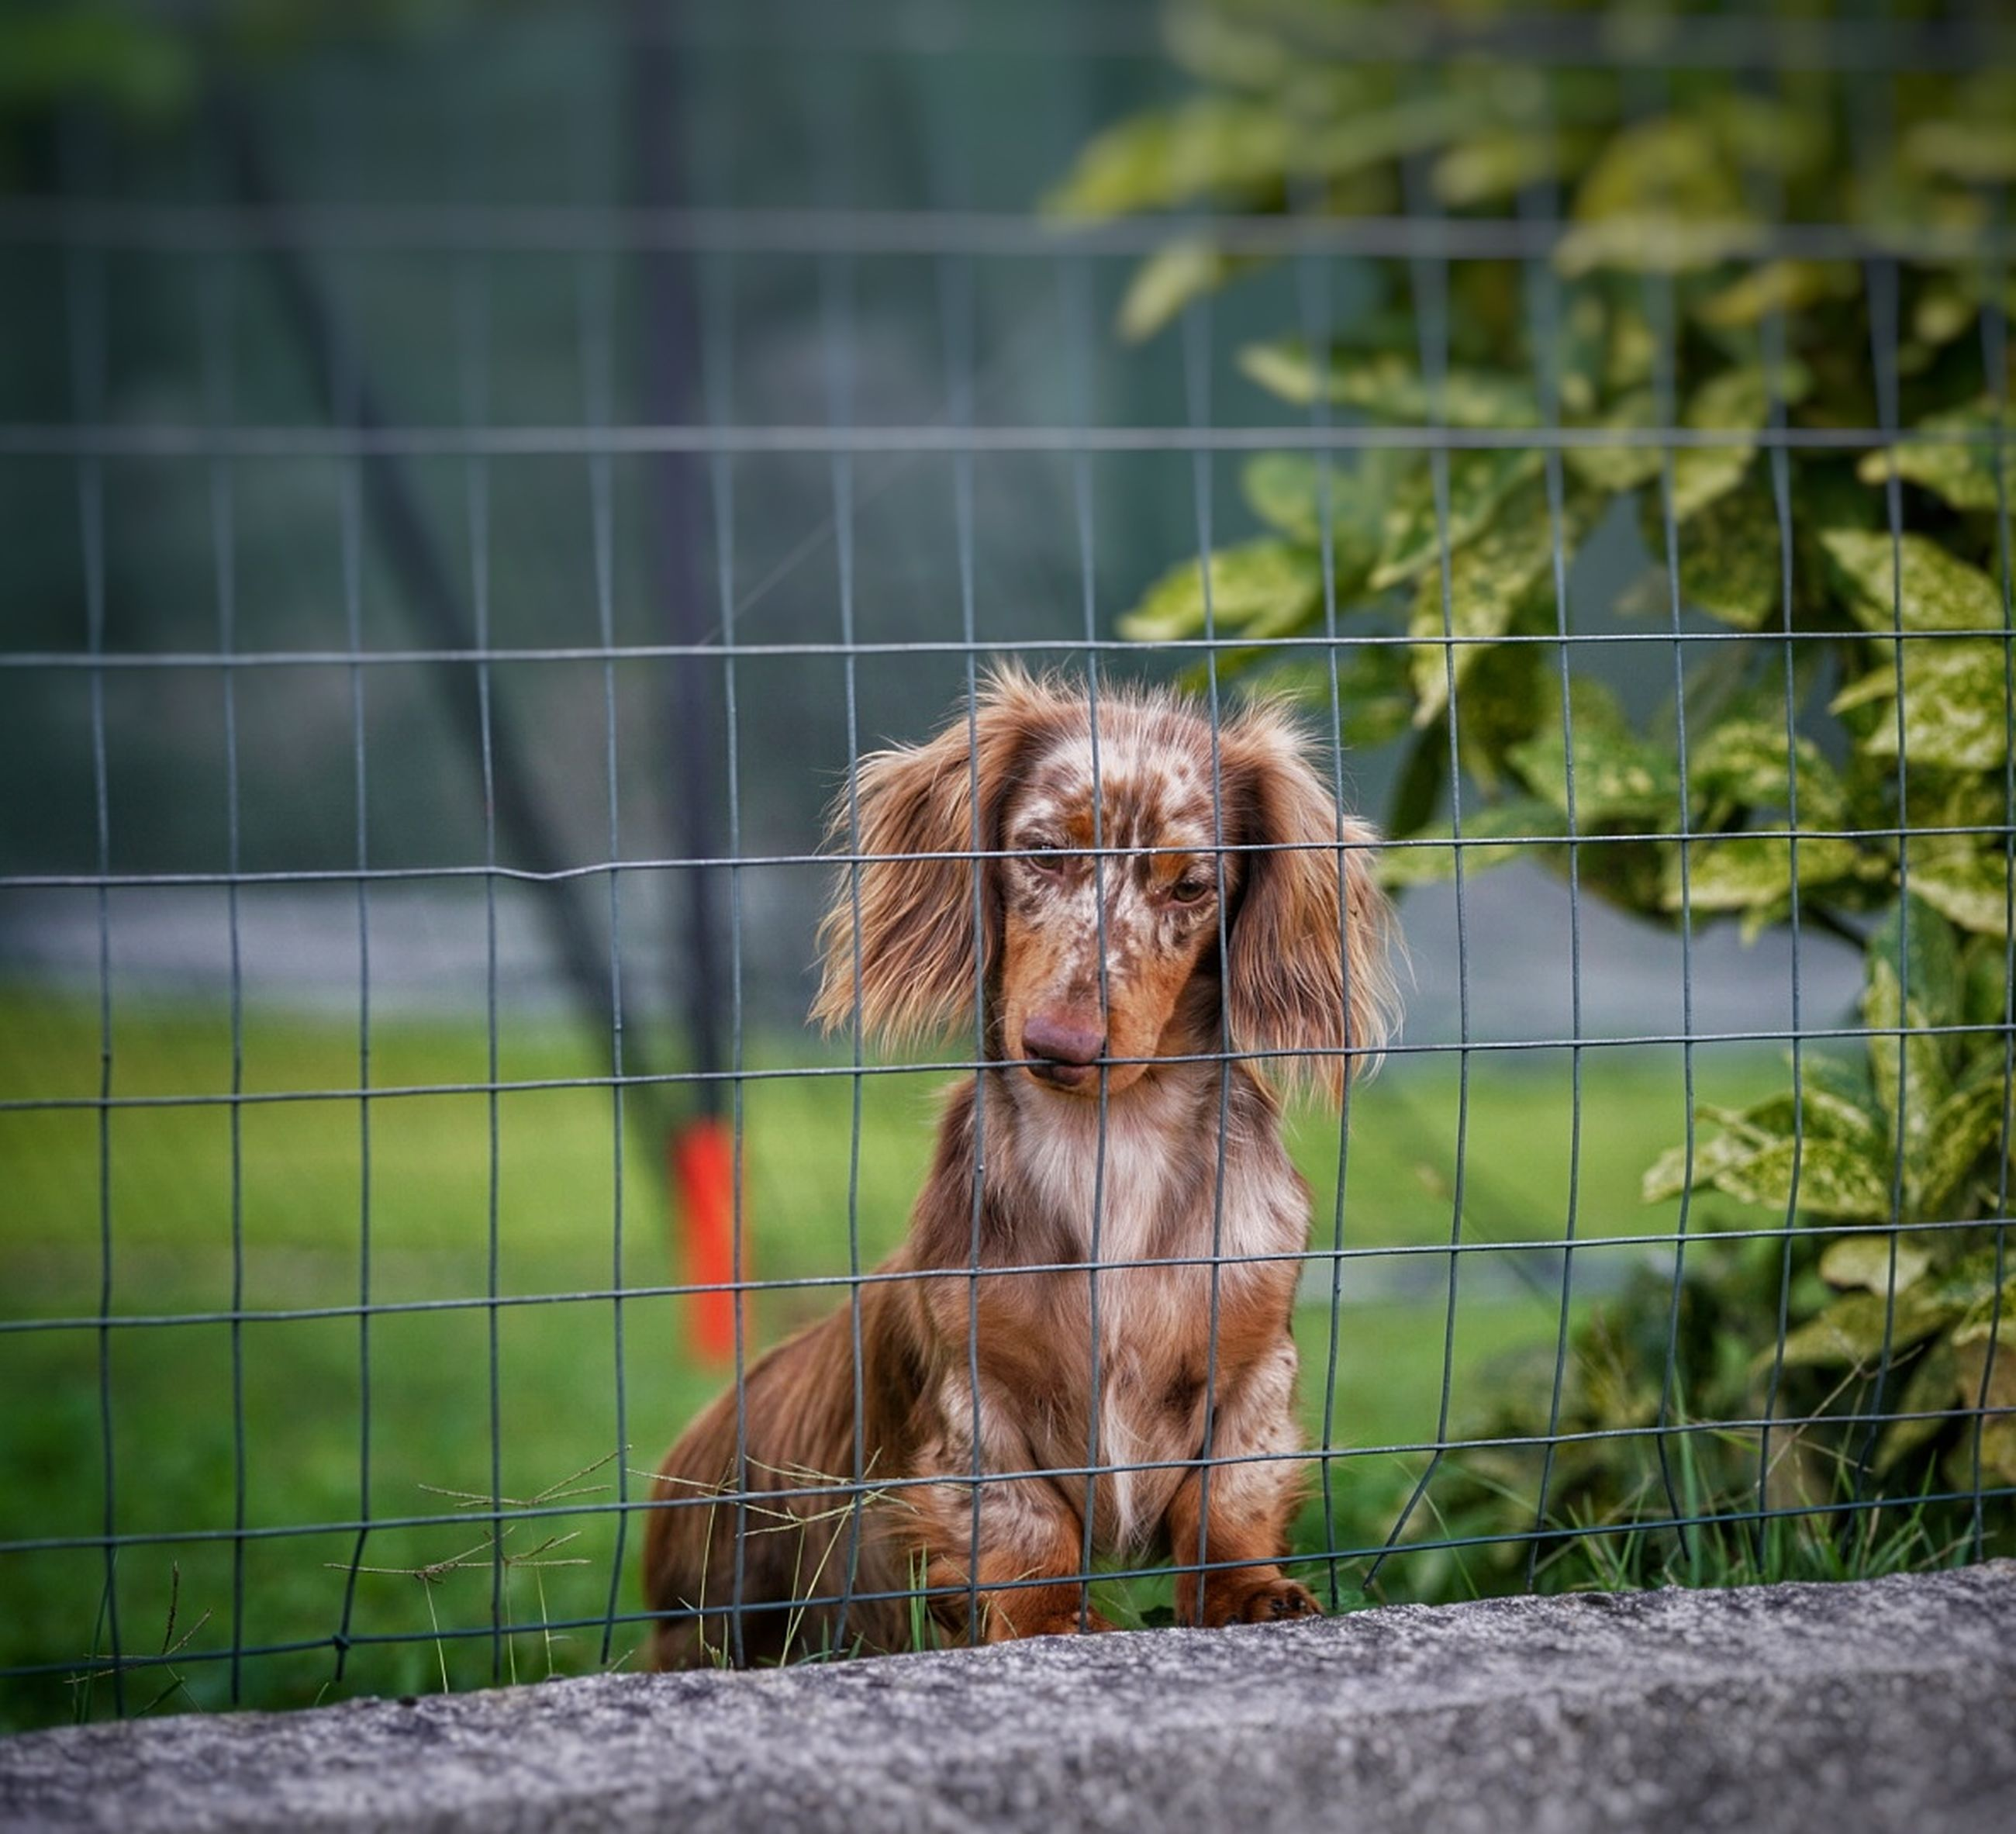 animal themes, one animal, animal, mammal, domestic, dog, domestic animals, pets, canine, vertebrate, focus on foreground, looking, no people, sitting, day, portrait, looking away, nature, selective focus, outdoors